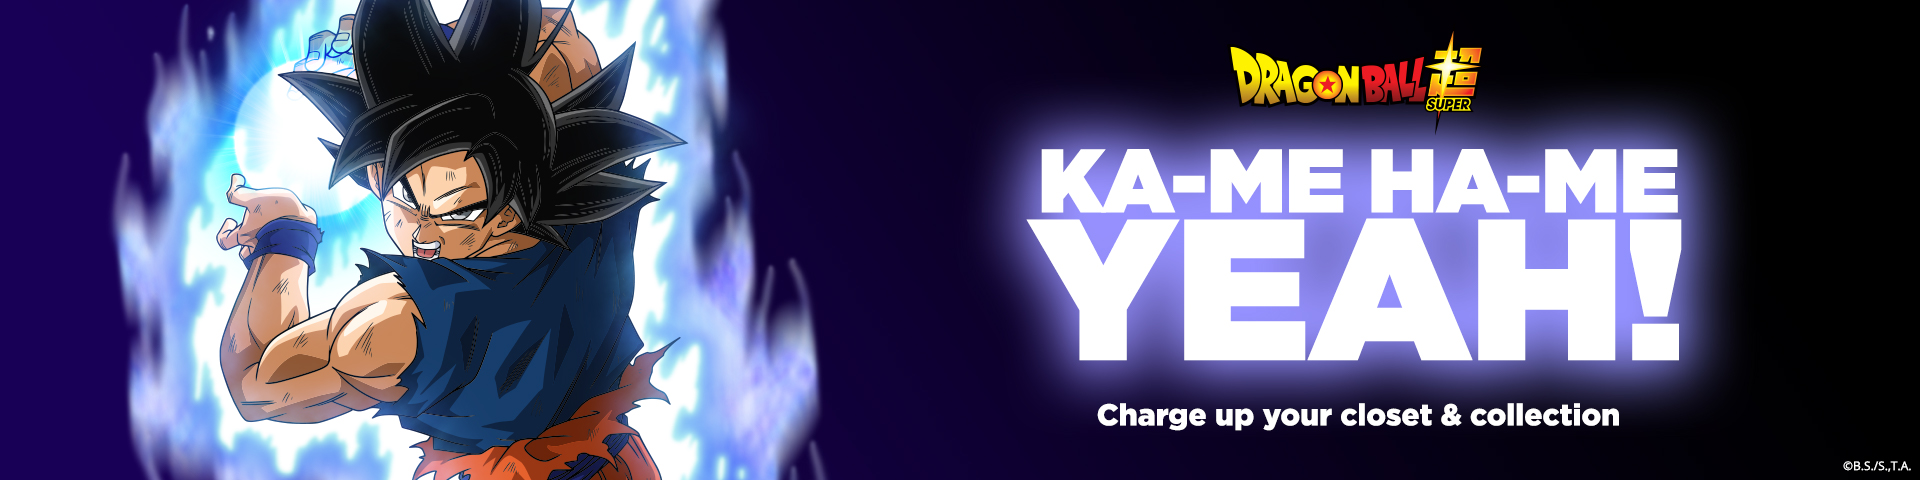 Ka-Me Ha-Me Yeah! Charge Up Your Closet and Collection.